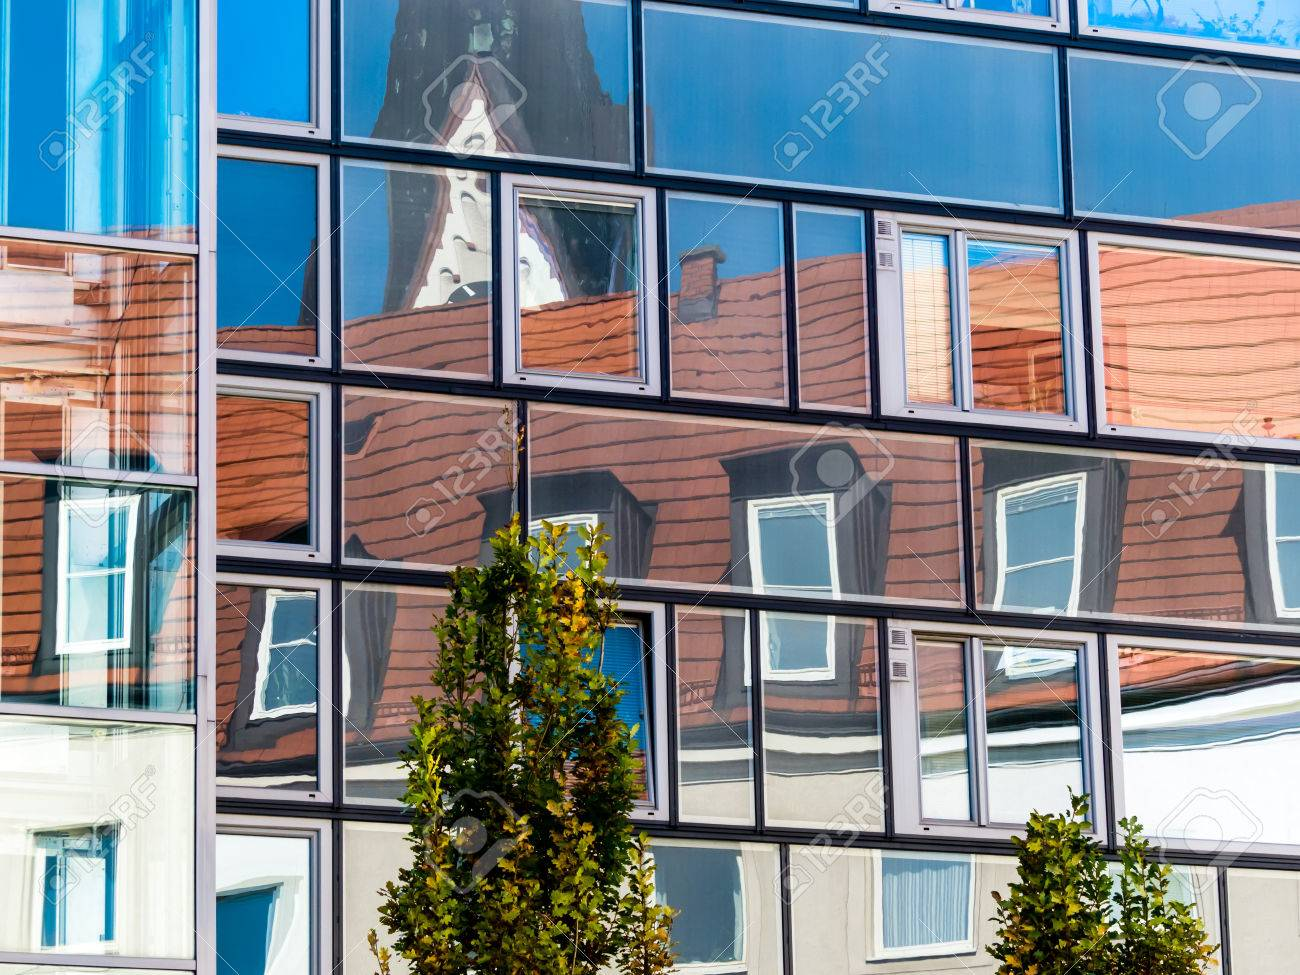 The Roof Extension Of A Residential Building Reflected In The Glass Facade  Of A Modern Office